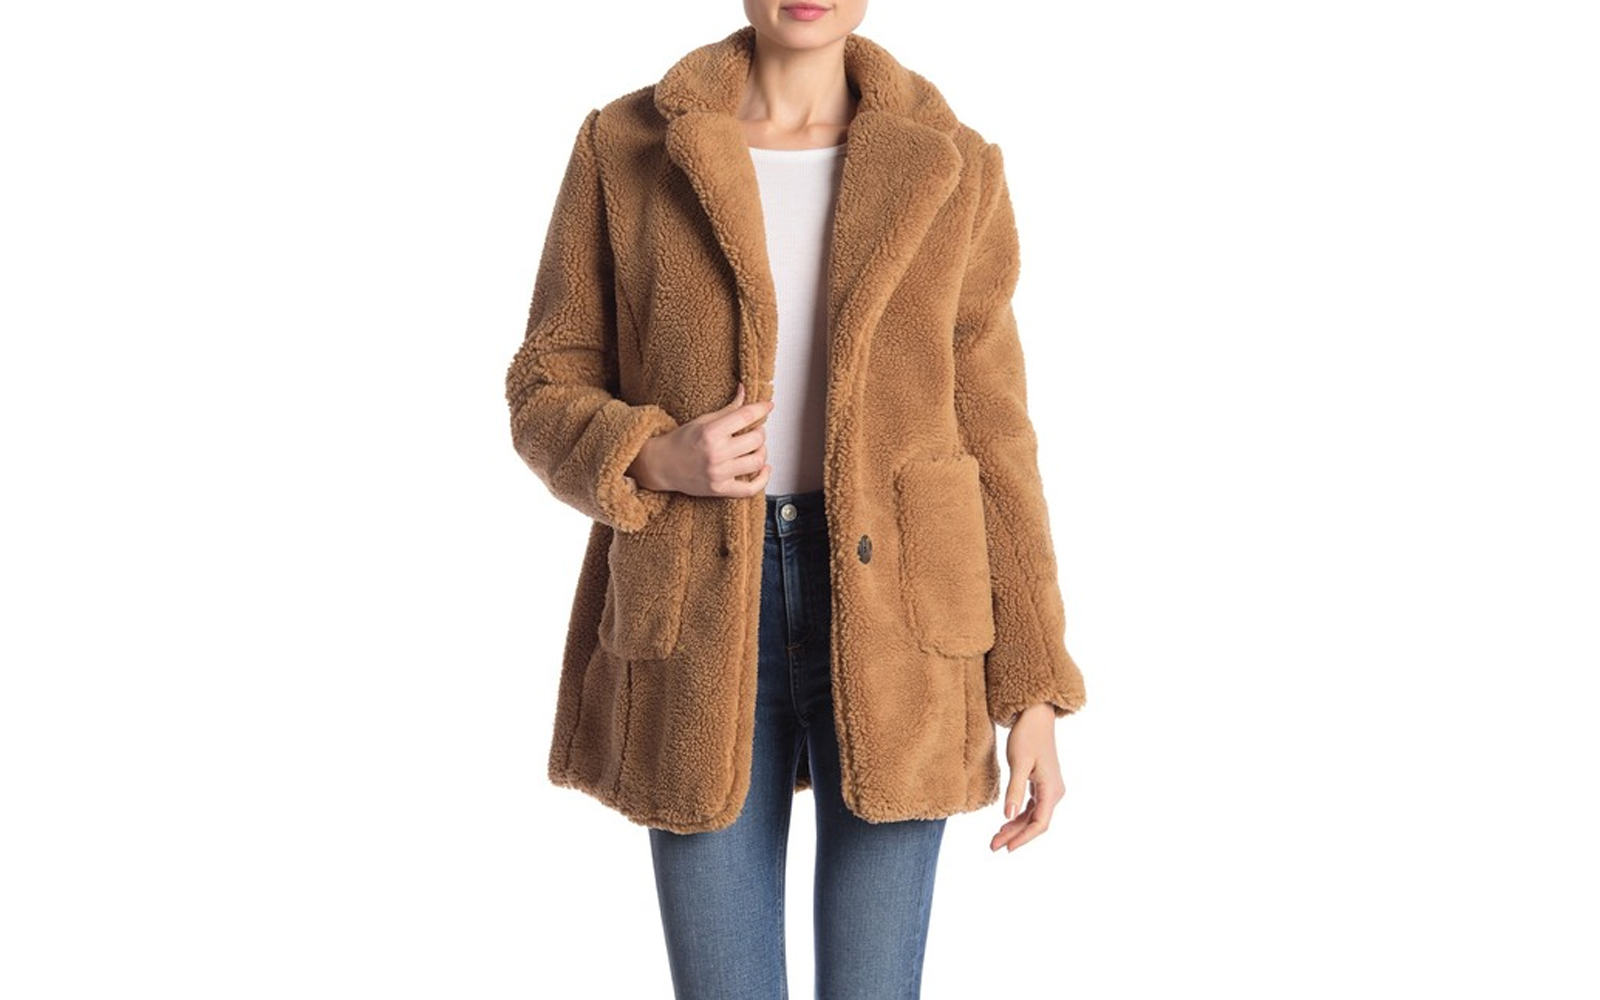 Sebby Notch Lapel Faux Shearling Jacket